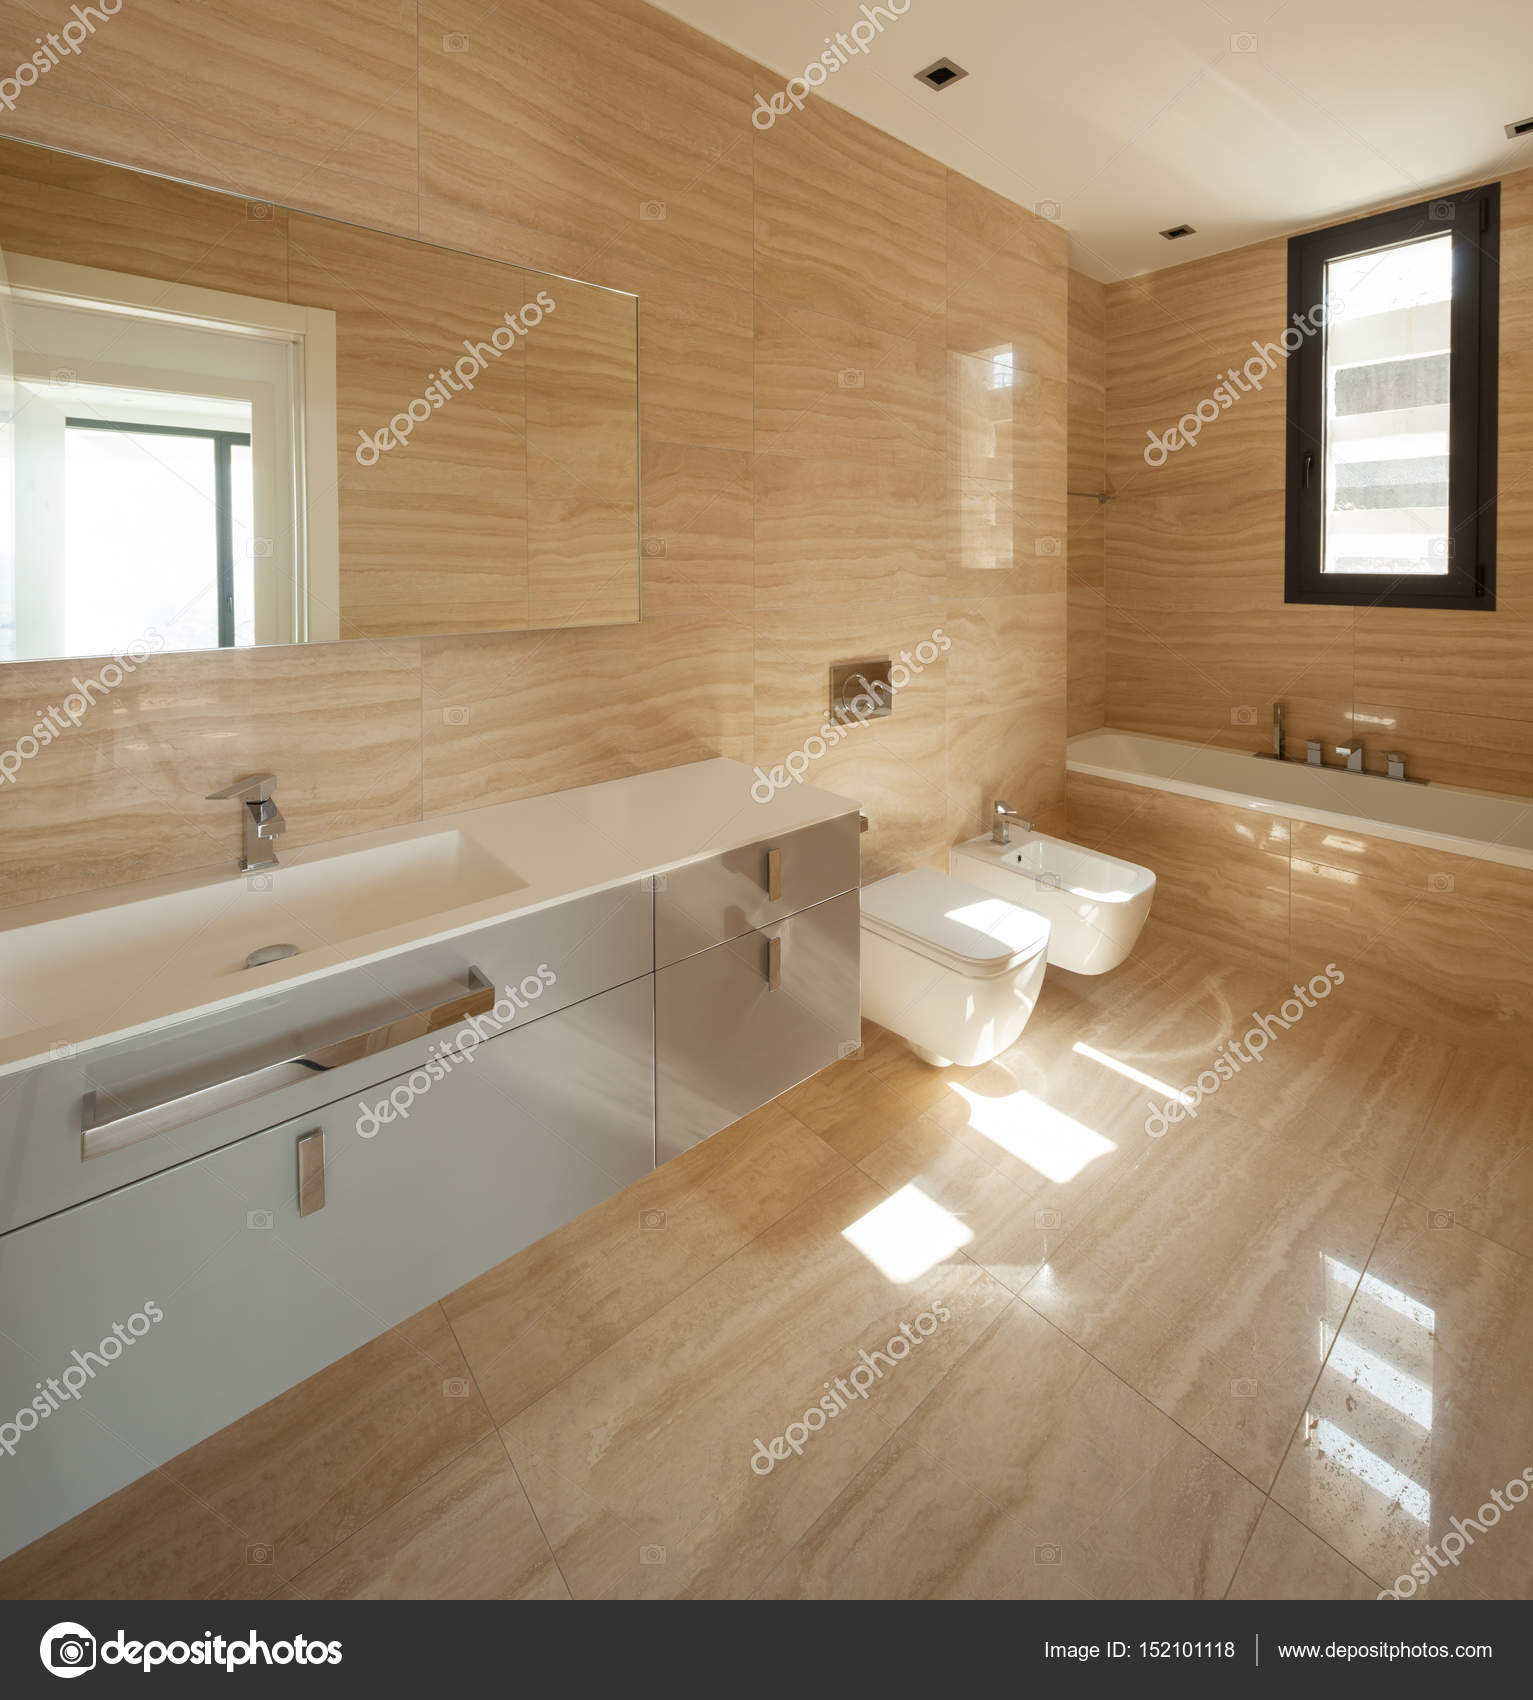 Bellissimo bagno in marmo — Foto Stock © Zveiger #152101118